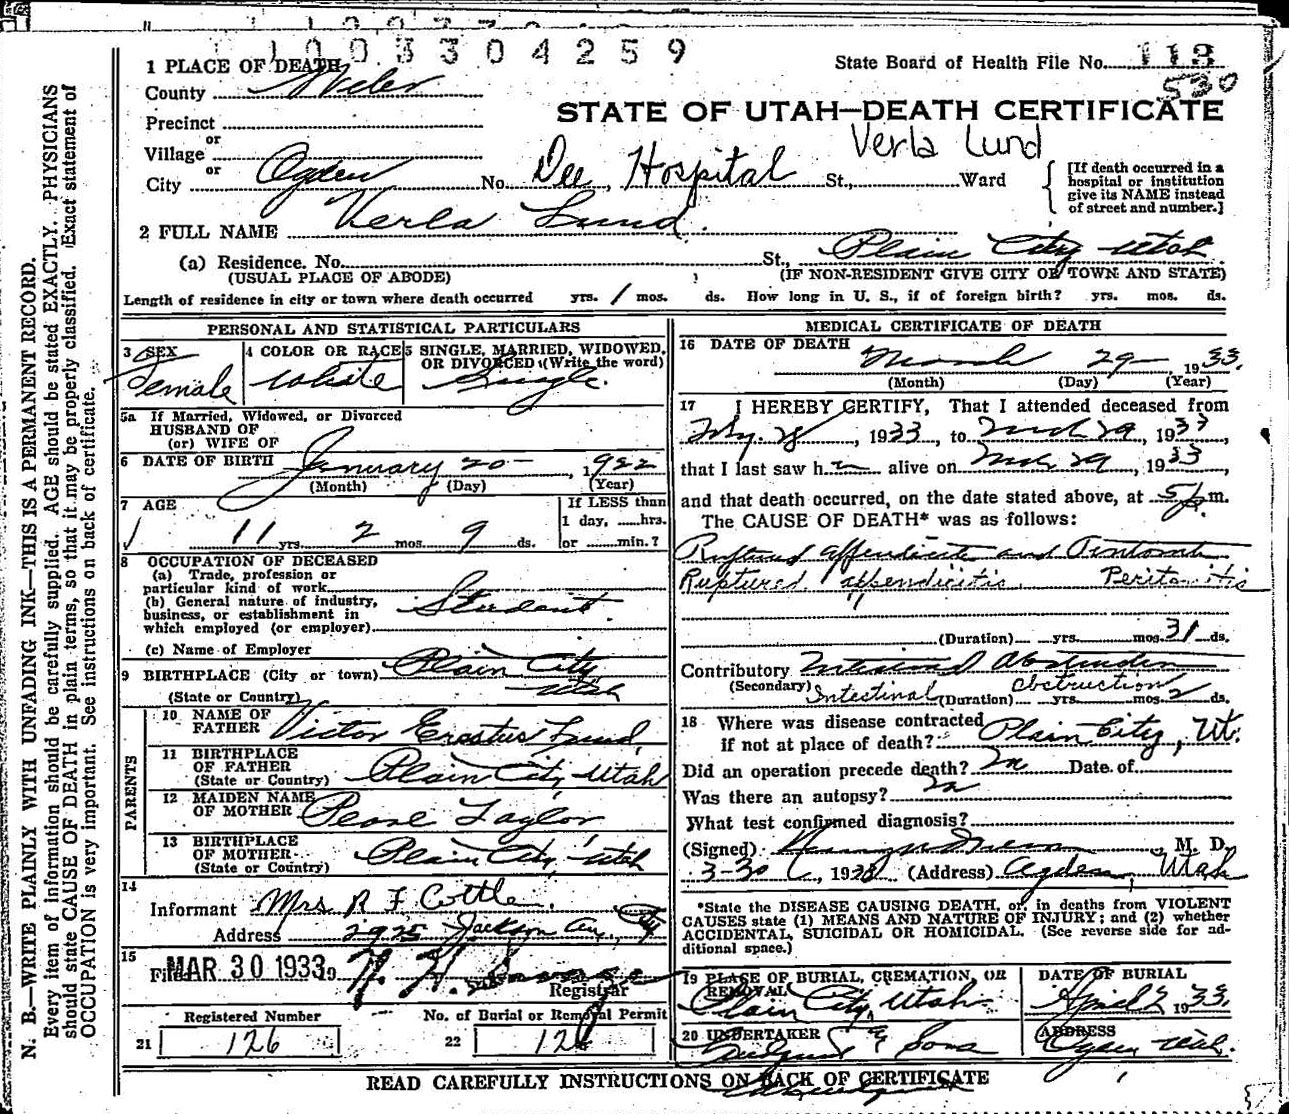 Deathcertificate lundverlag in the 1930 census she was 8 years old how did she die to find out i went to the utah state archives and found her death certificate 1betcityfo Choice Image